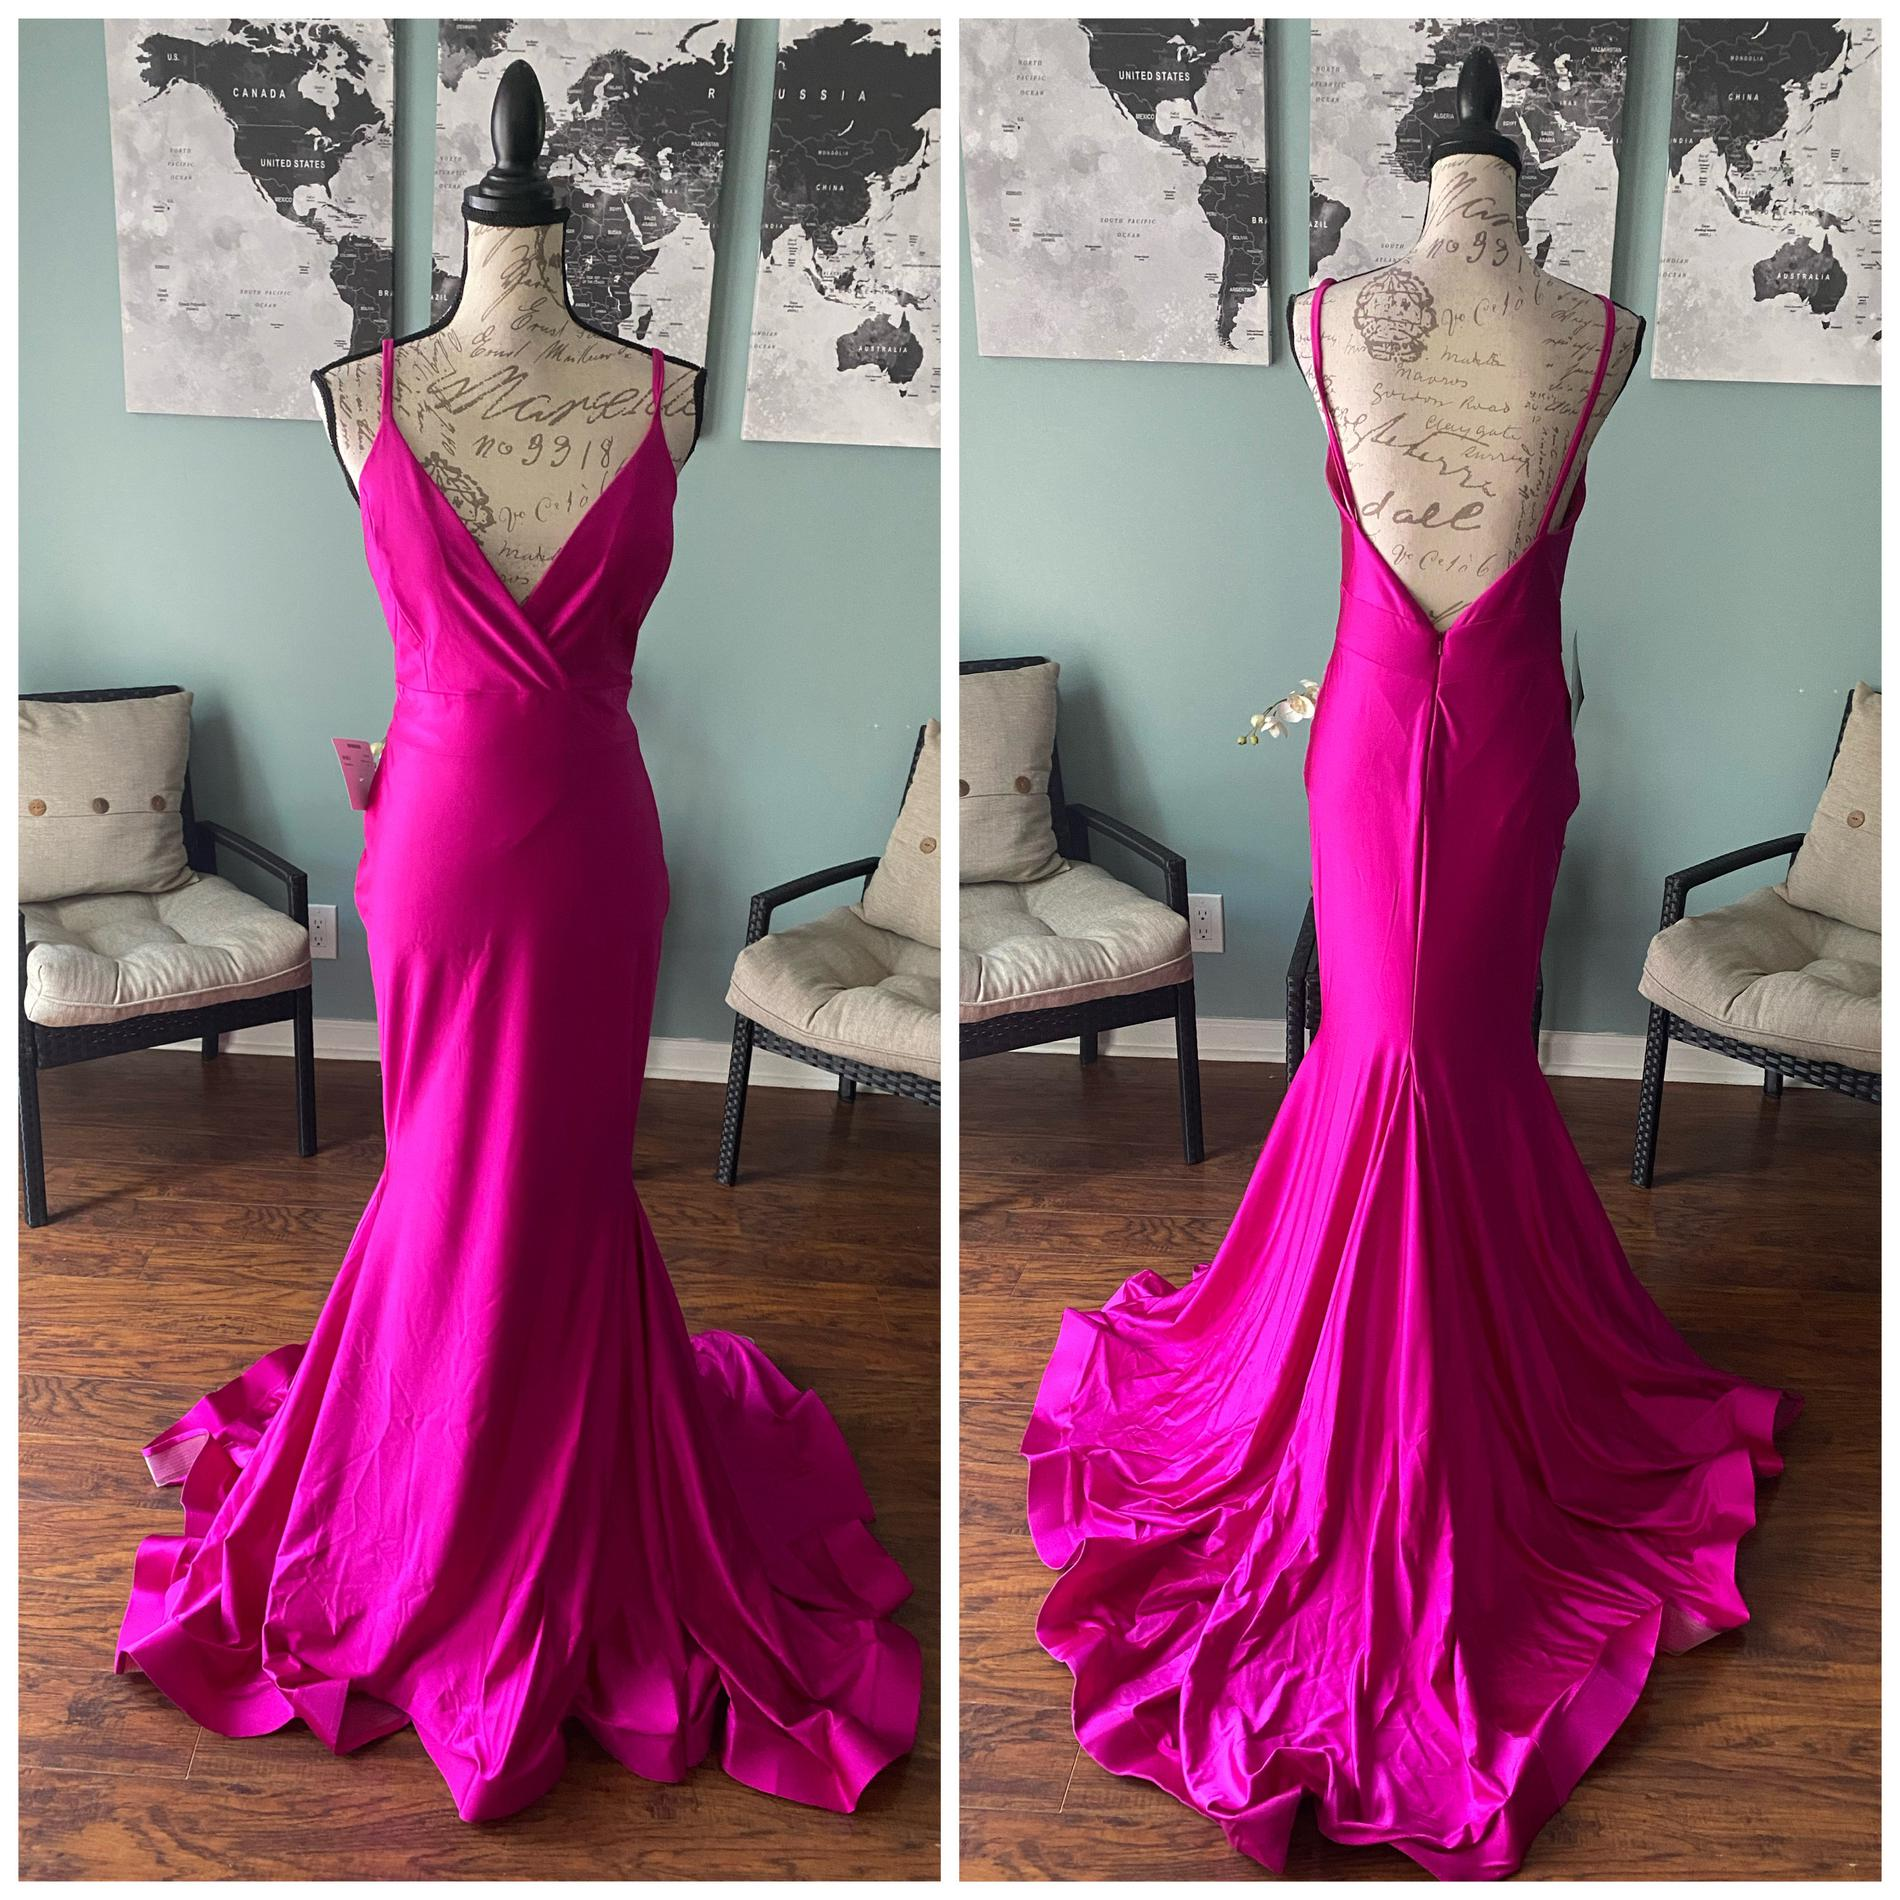 Jessica Angel Pink Size 8 Backless Pageant Train Silk Mermaid Dress on Queenly